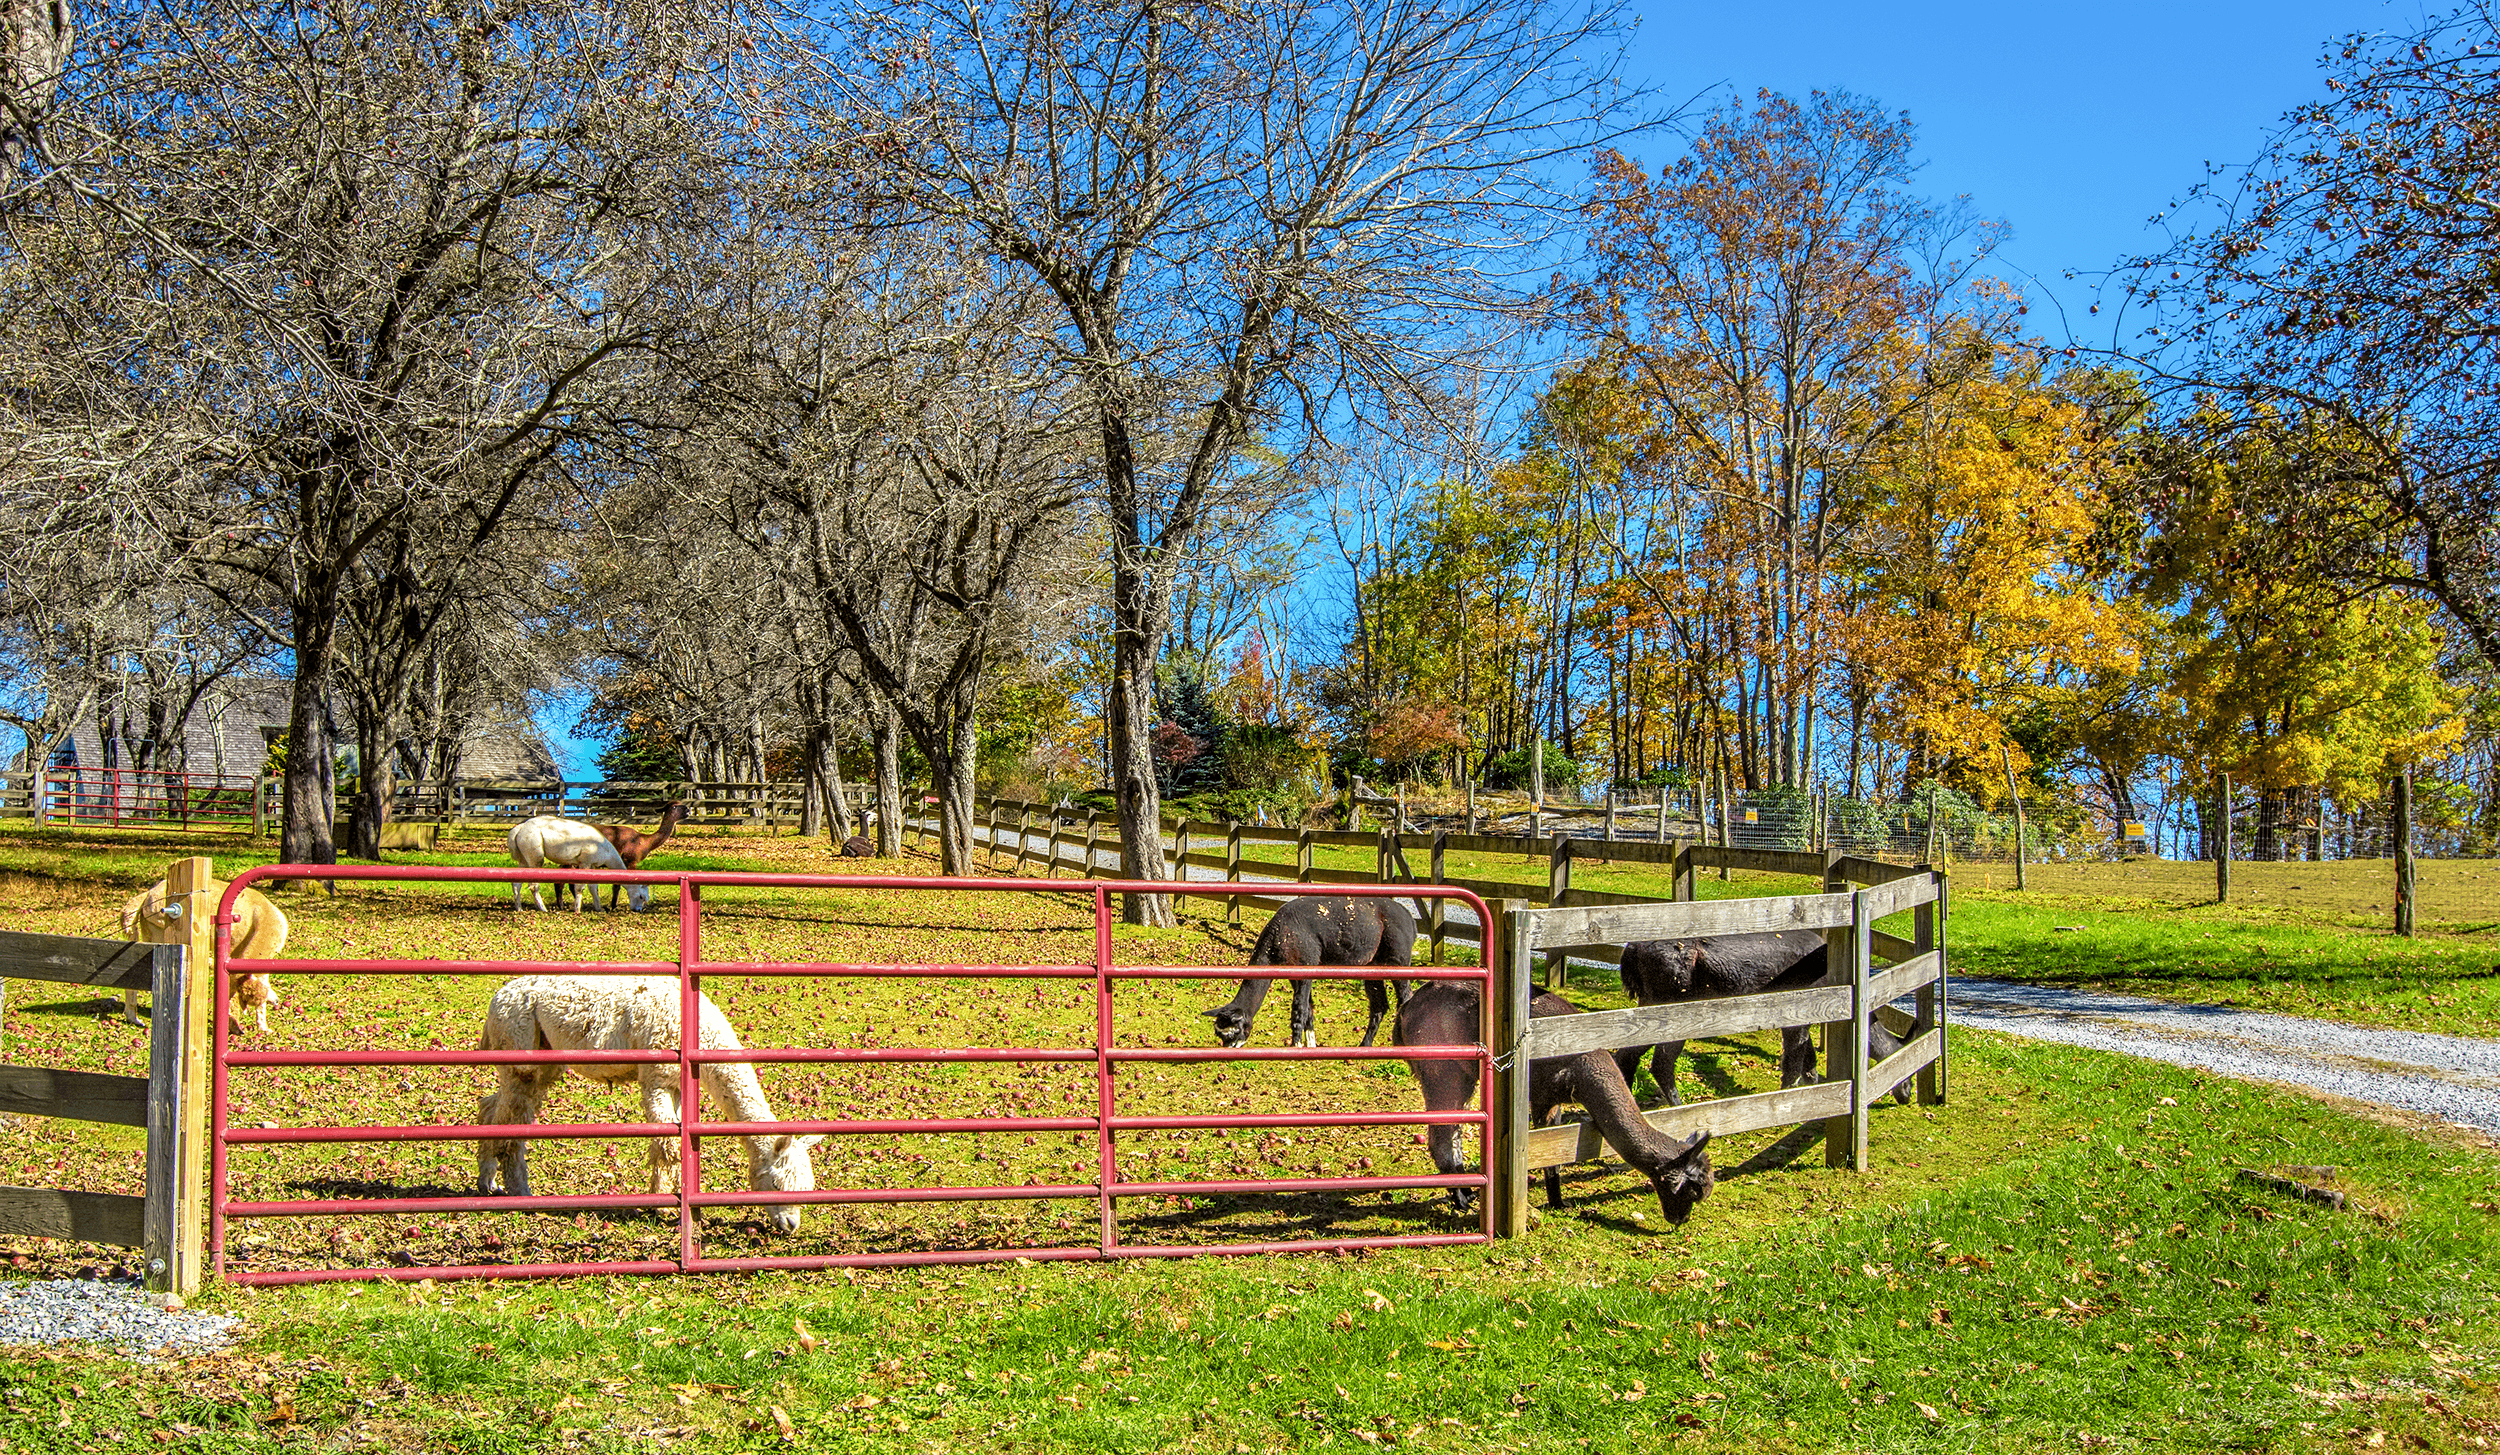 Apple Hill Farm  is a working Alpaca Farm on the picturesque hilltop of Valle Mountain 6 miles (10 km) east of Banner Elk, NC. Visitors can take a guided tour of the farm and learn about alpacas, llamas, horses, angora goats, and even donkeys.